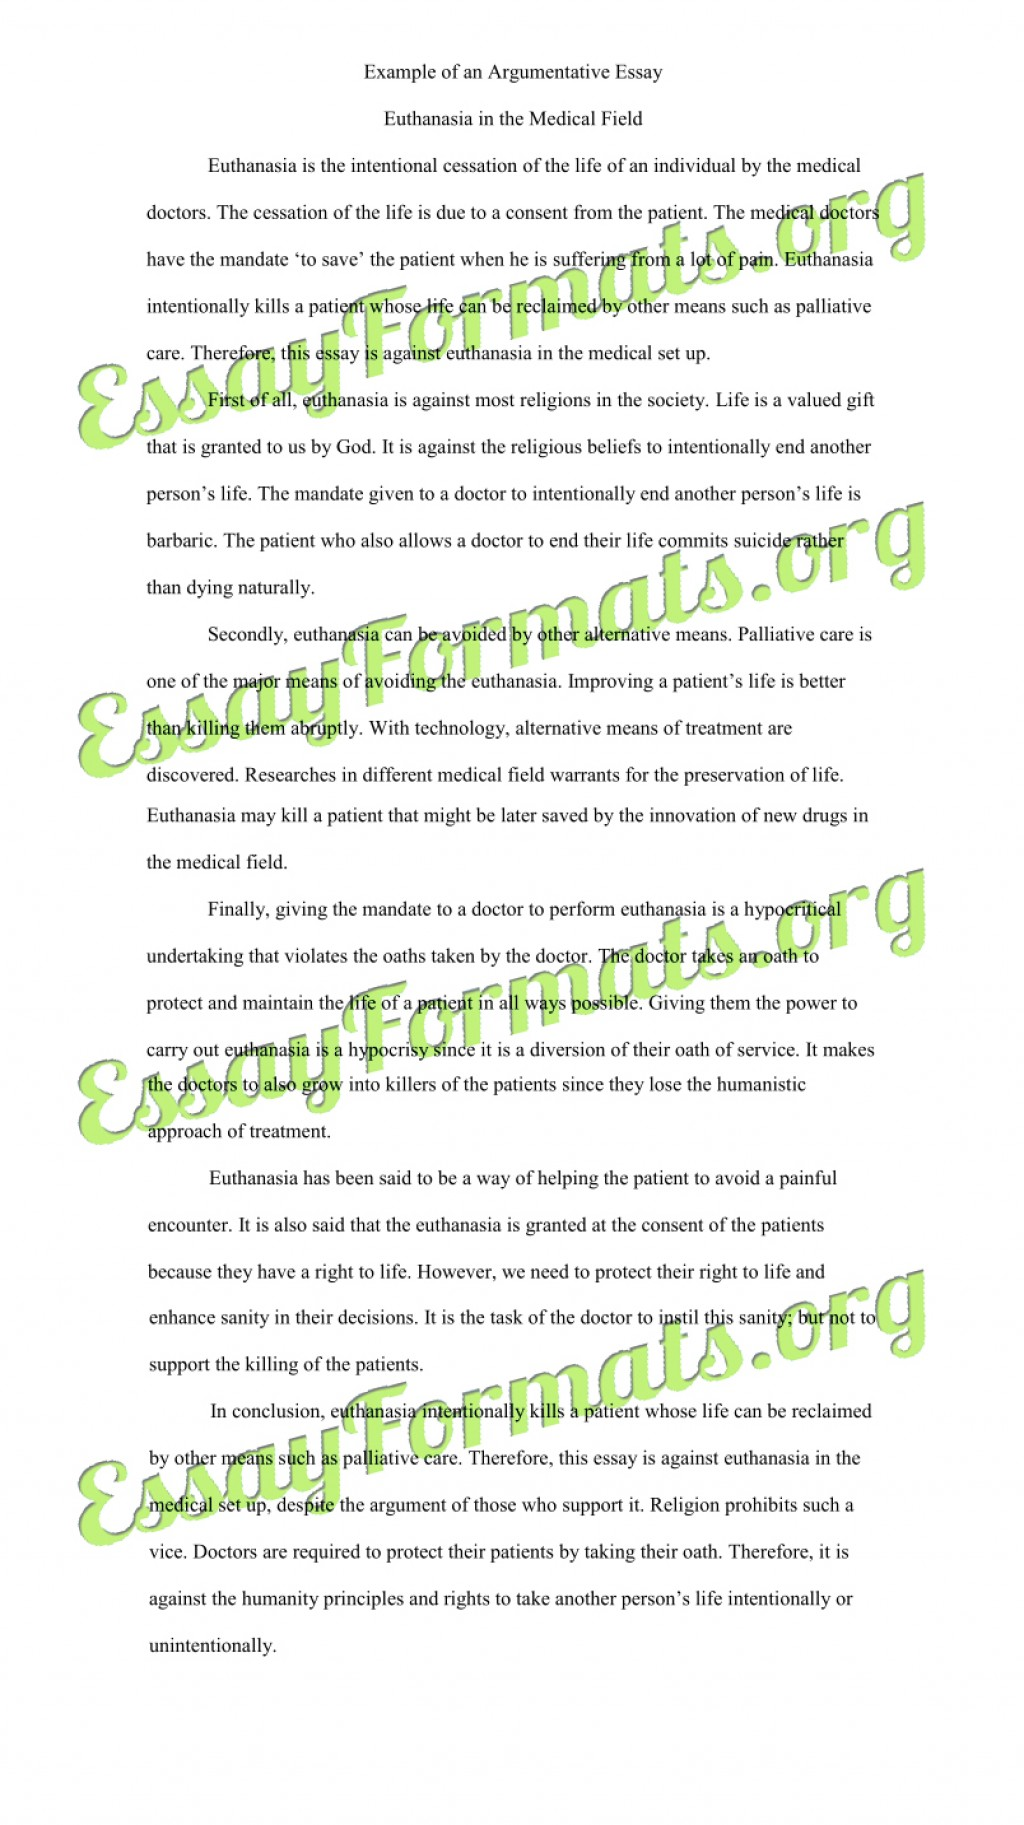 005 Essay Example Euthanasia Argumentative Counter Argument Persuasive Examples L Stirring Outline Conclusion Pdf Large